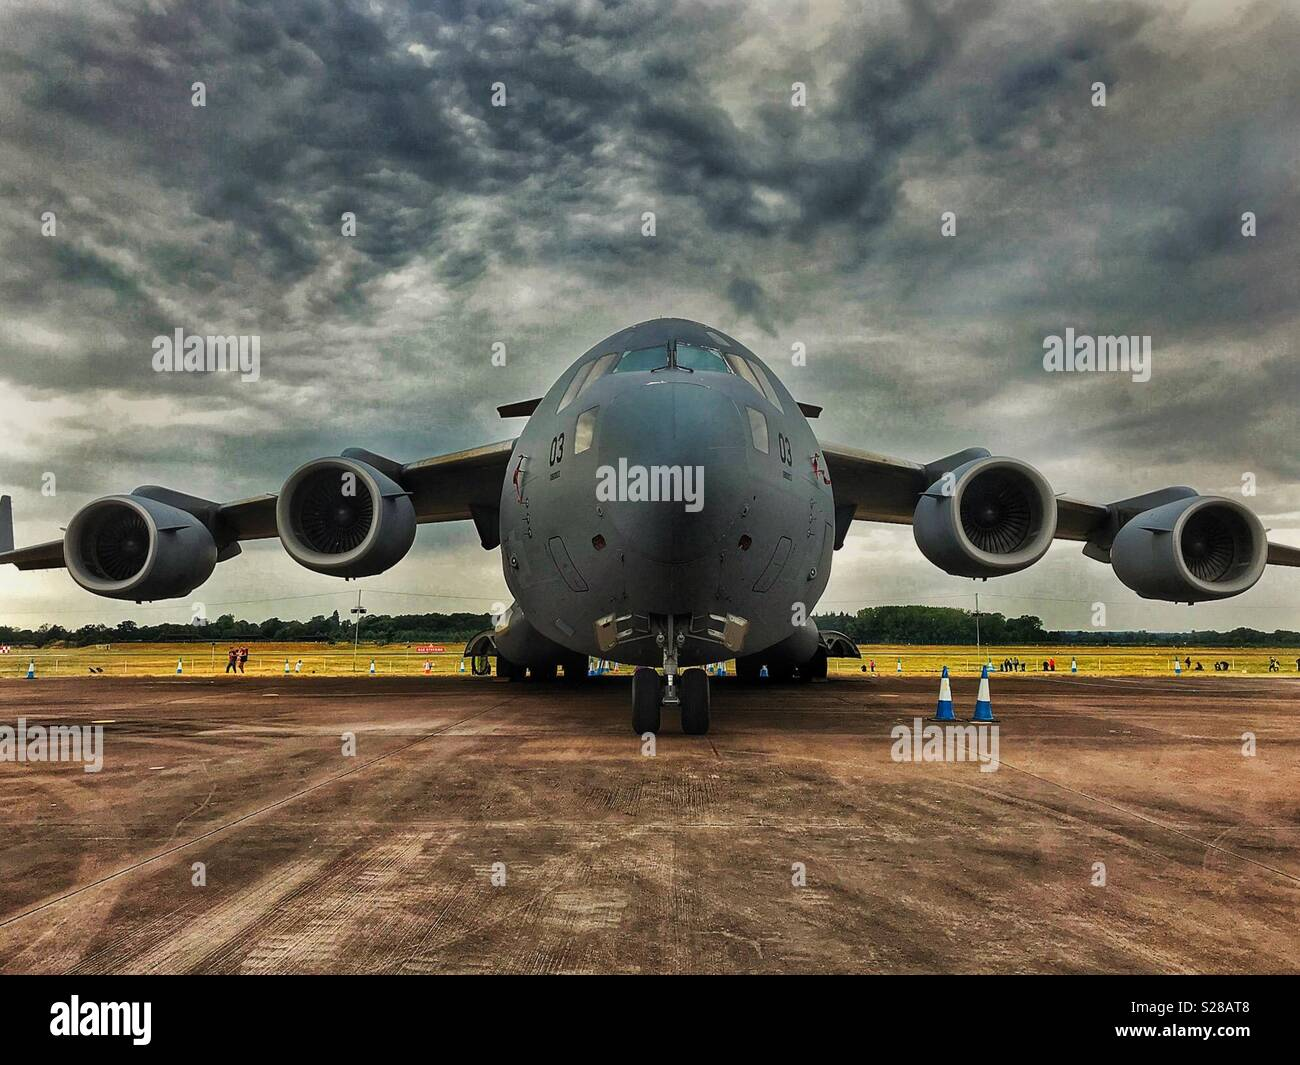 Boeing C-17A Globemaster heavy lift transport aircraft in Hungarian Air Force markings - Stock Image